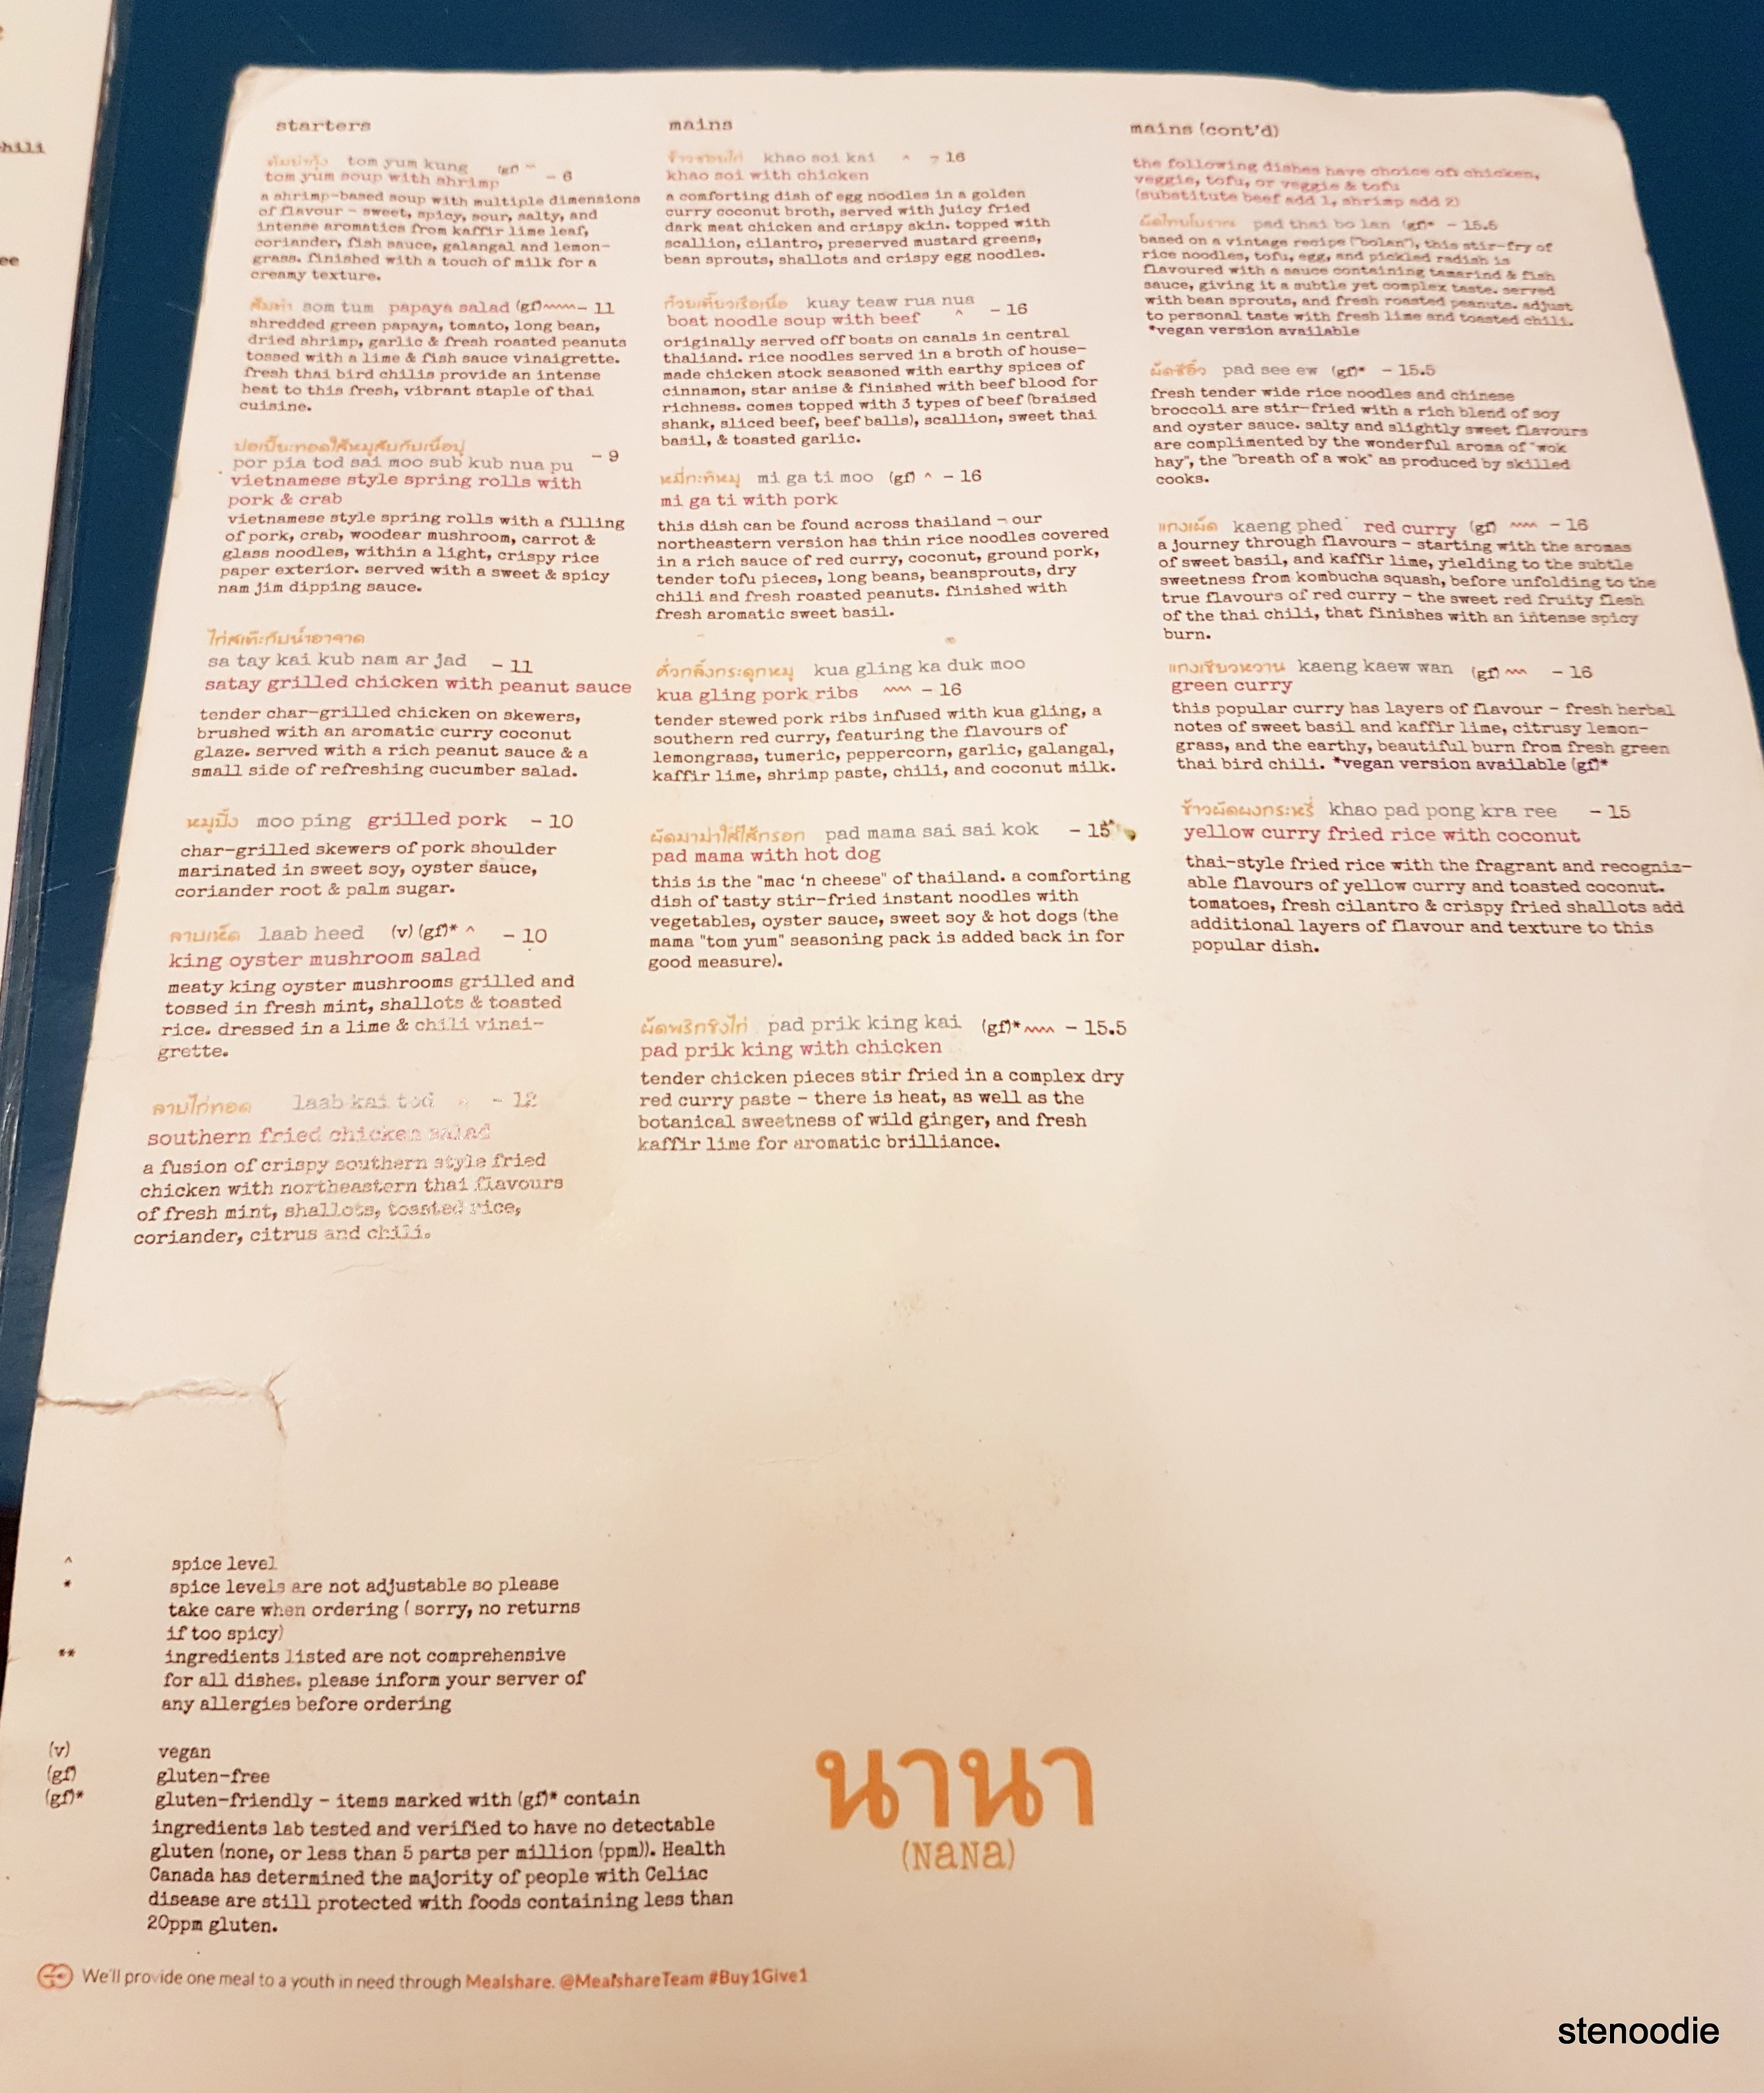 Nana Restaurant expanded menu and prices